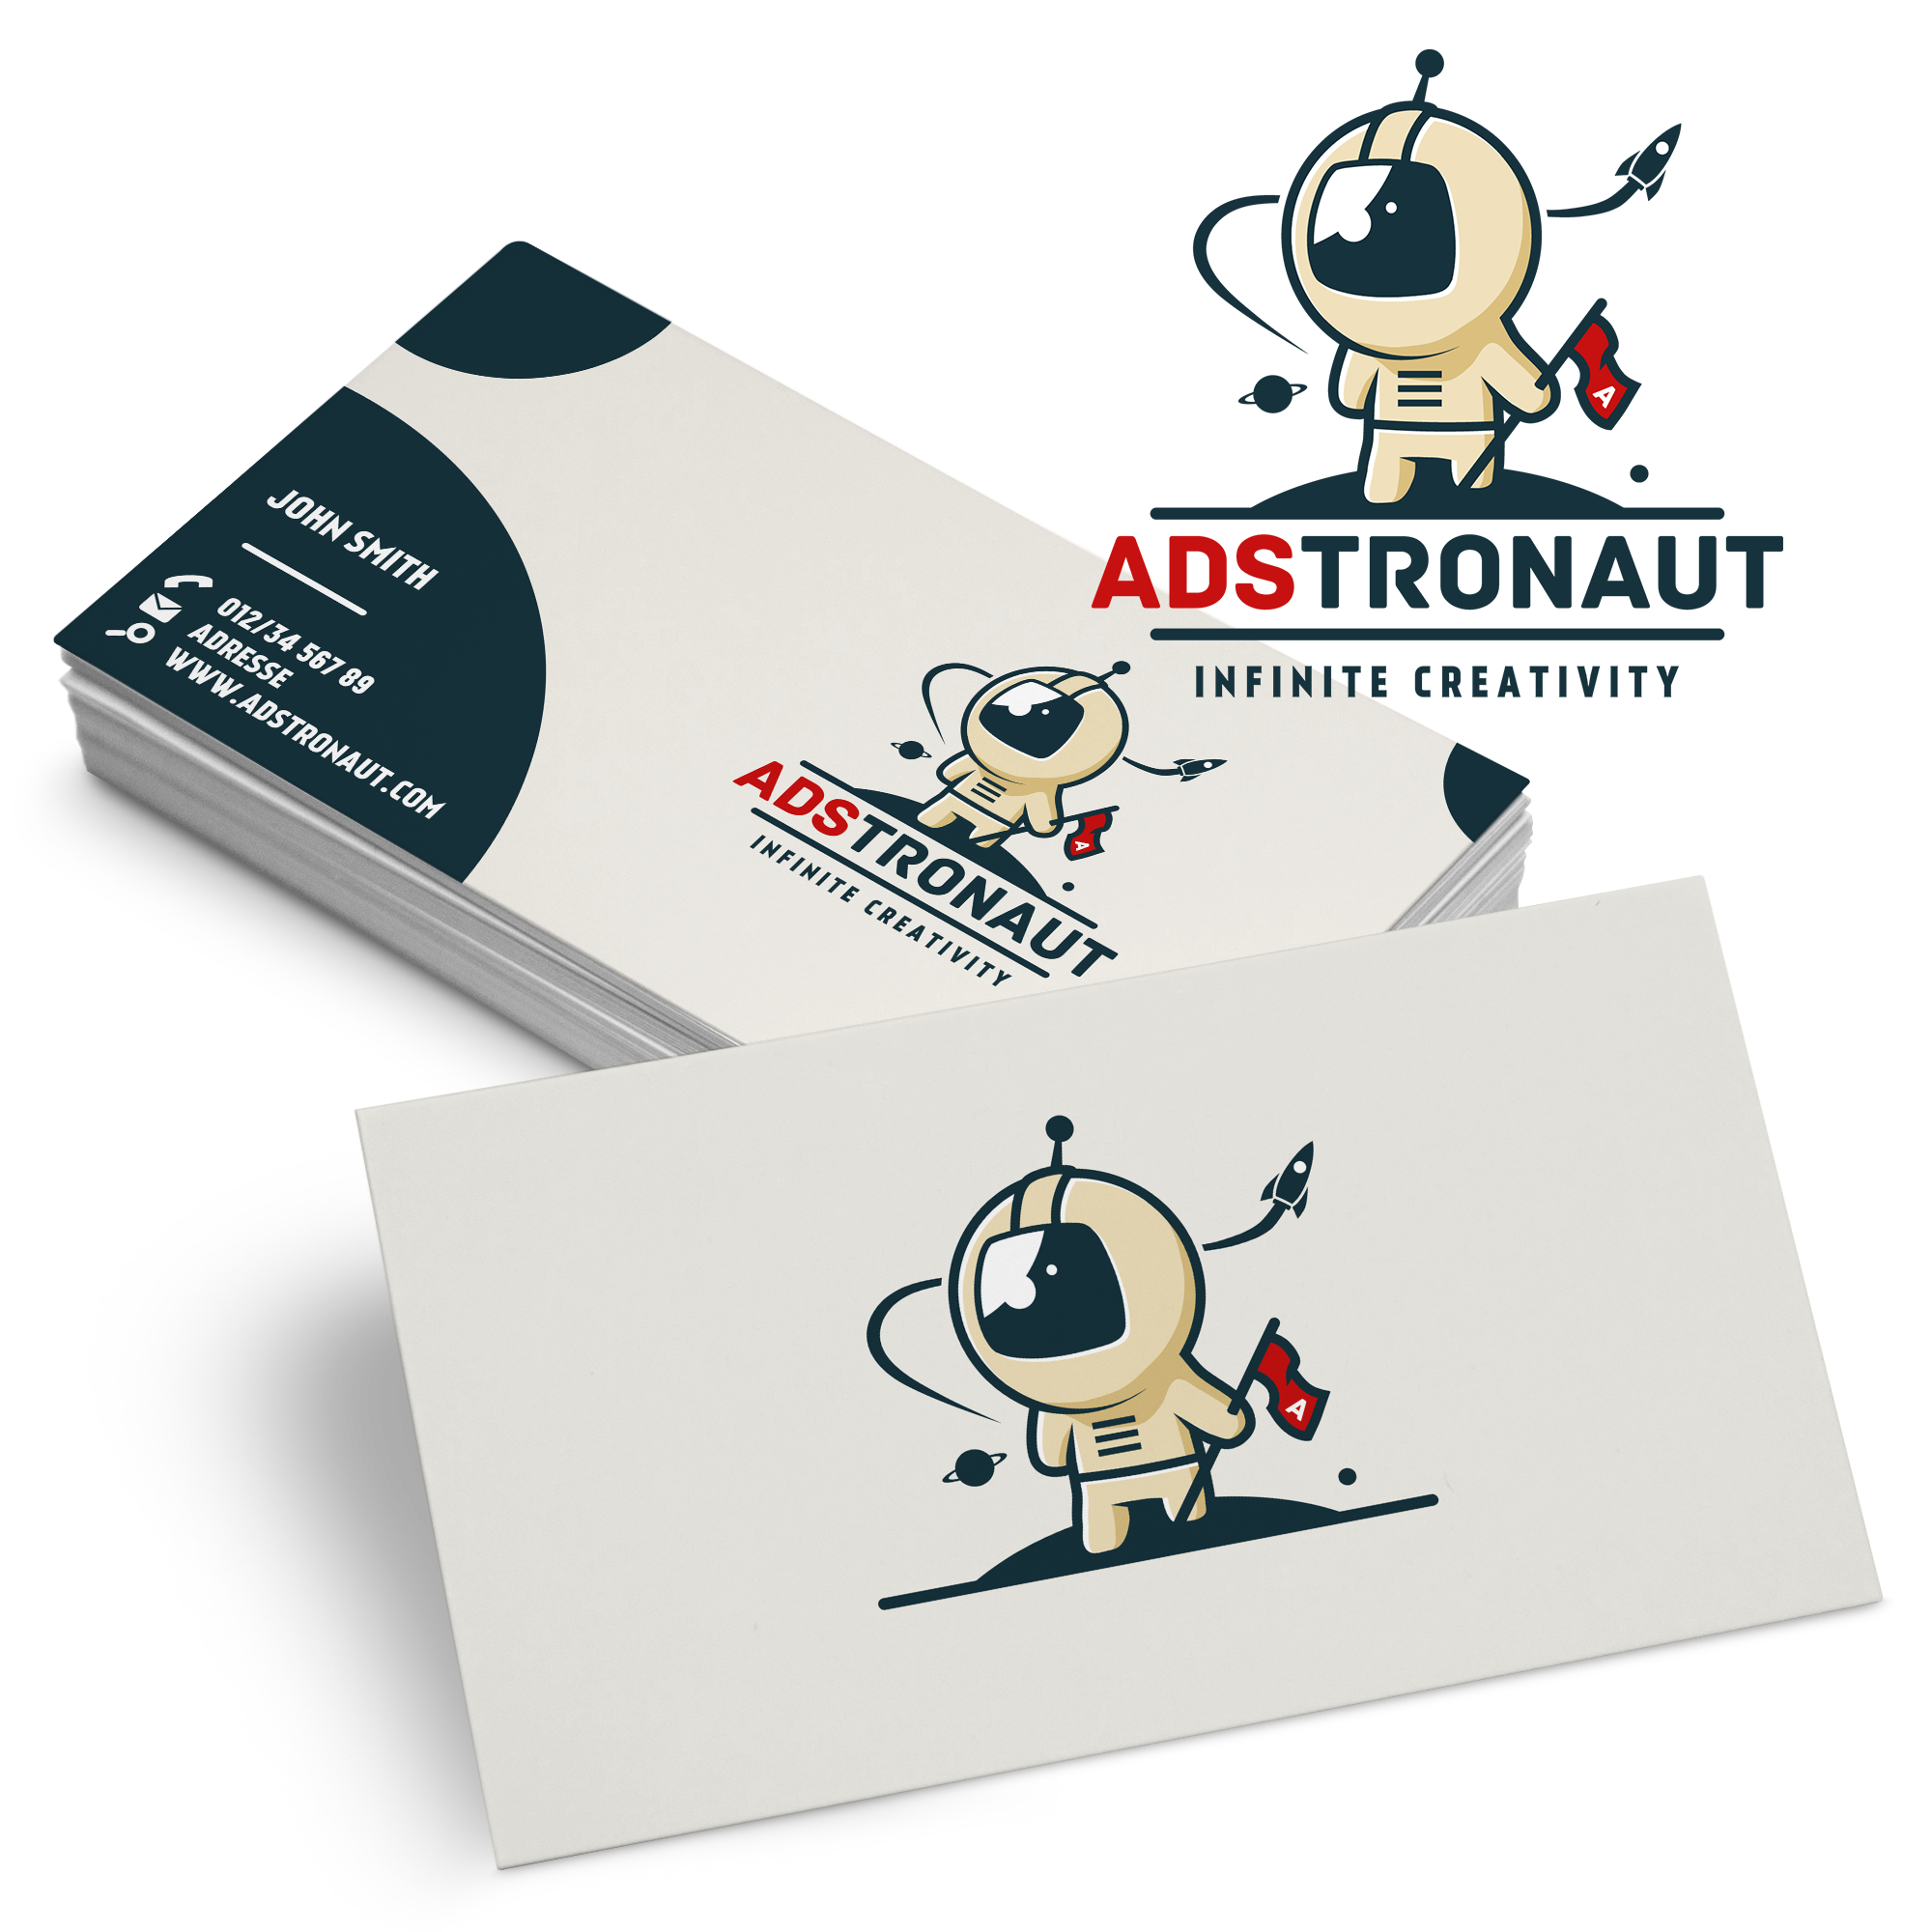 Business Card Logos - Get A Custom Logo for Business Cards | 99designs